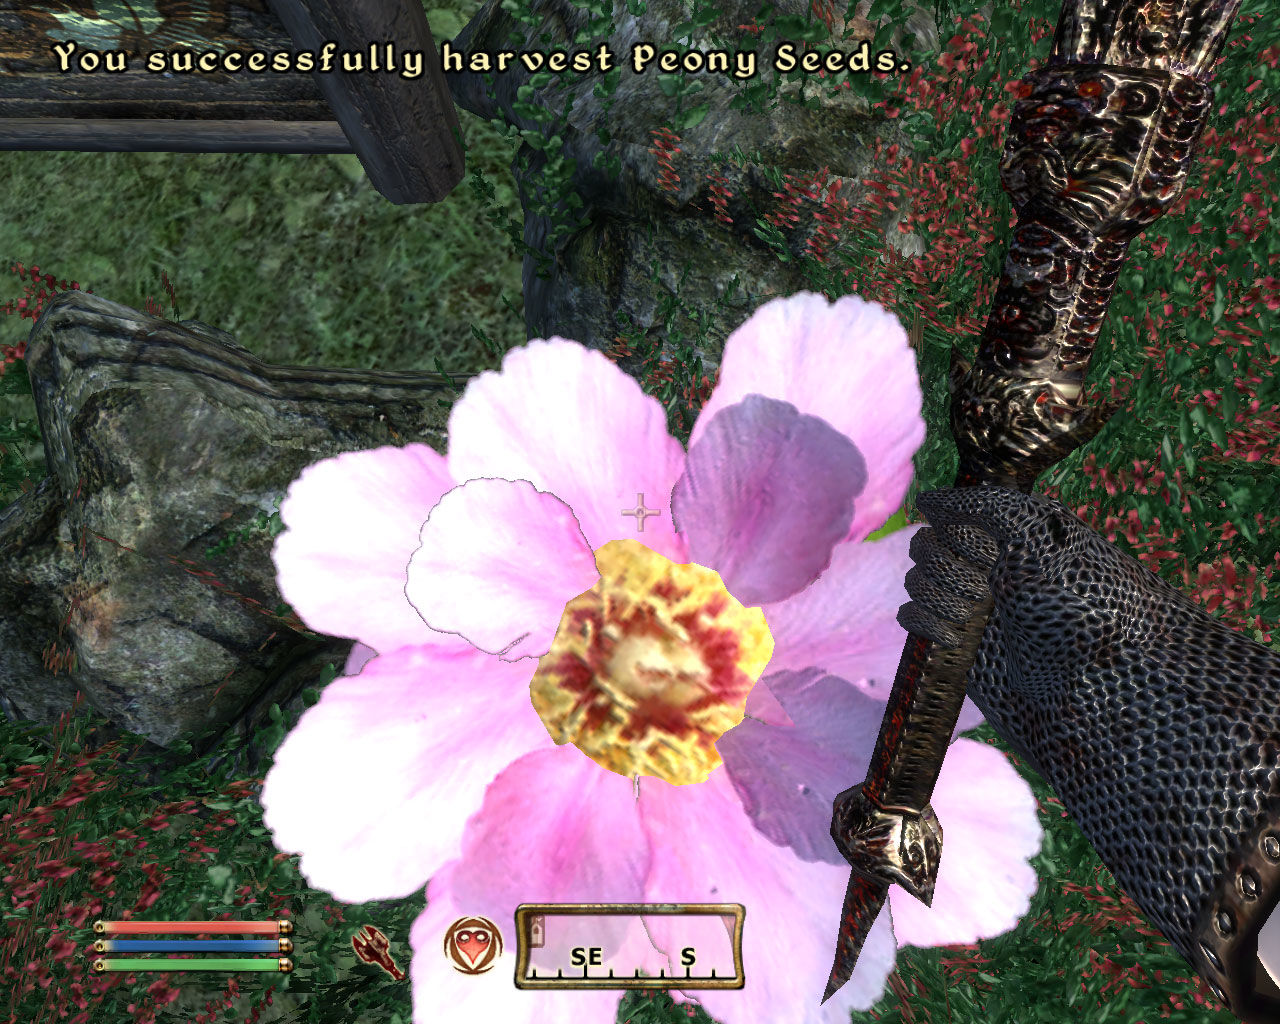 The Elder Scrolls IV: Oblivion Windows Harvesting alchemical reagents